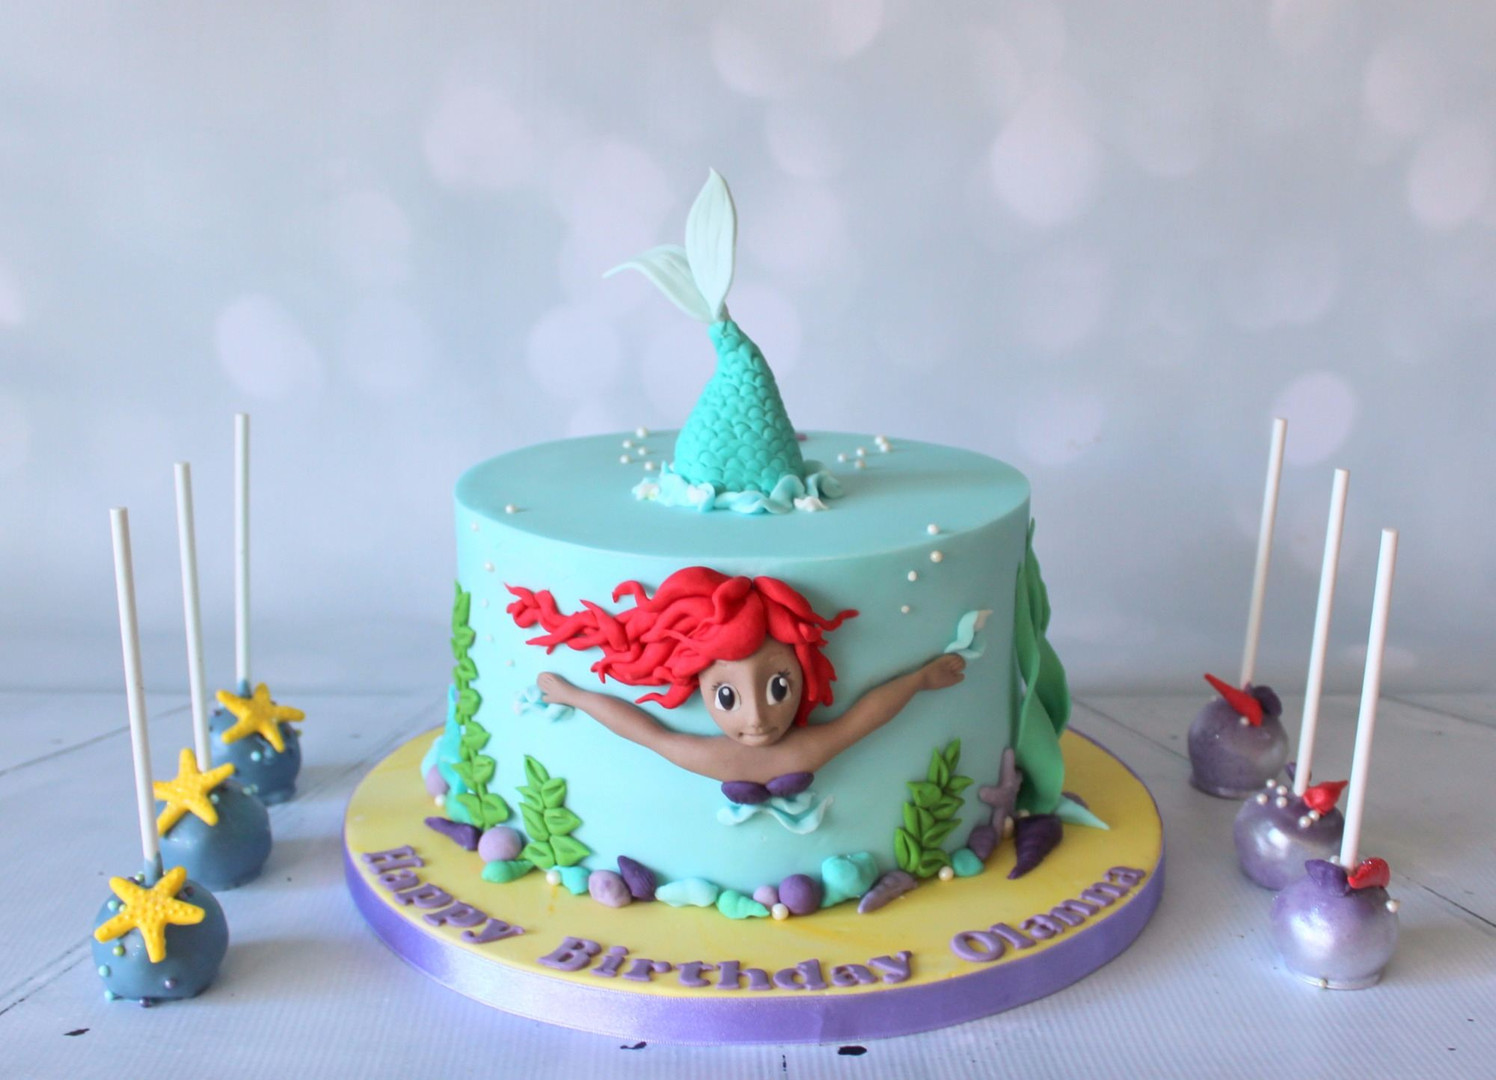 3D Mermaid Cake with Cake pops